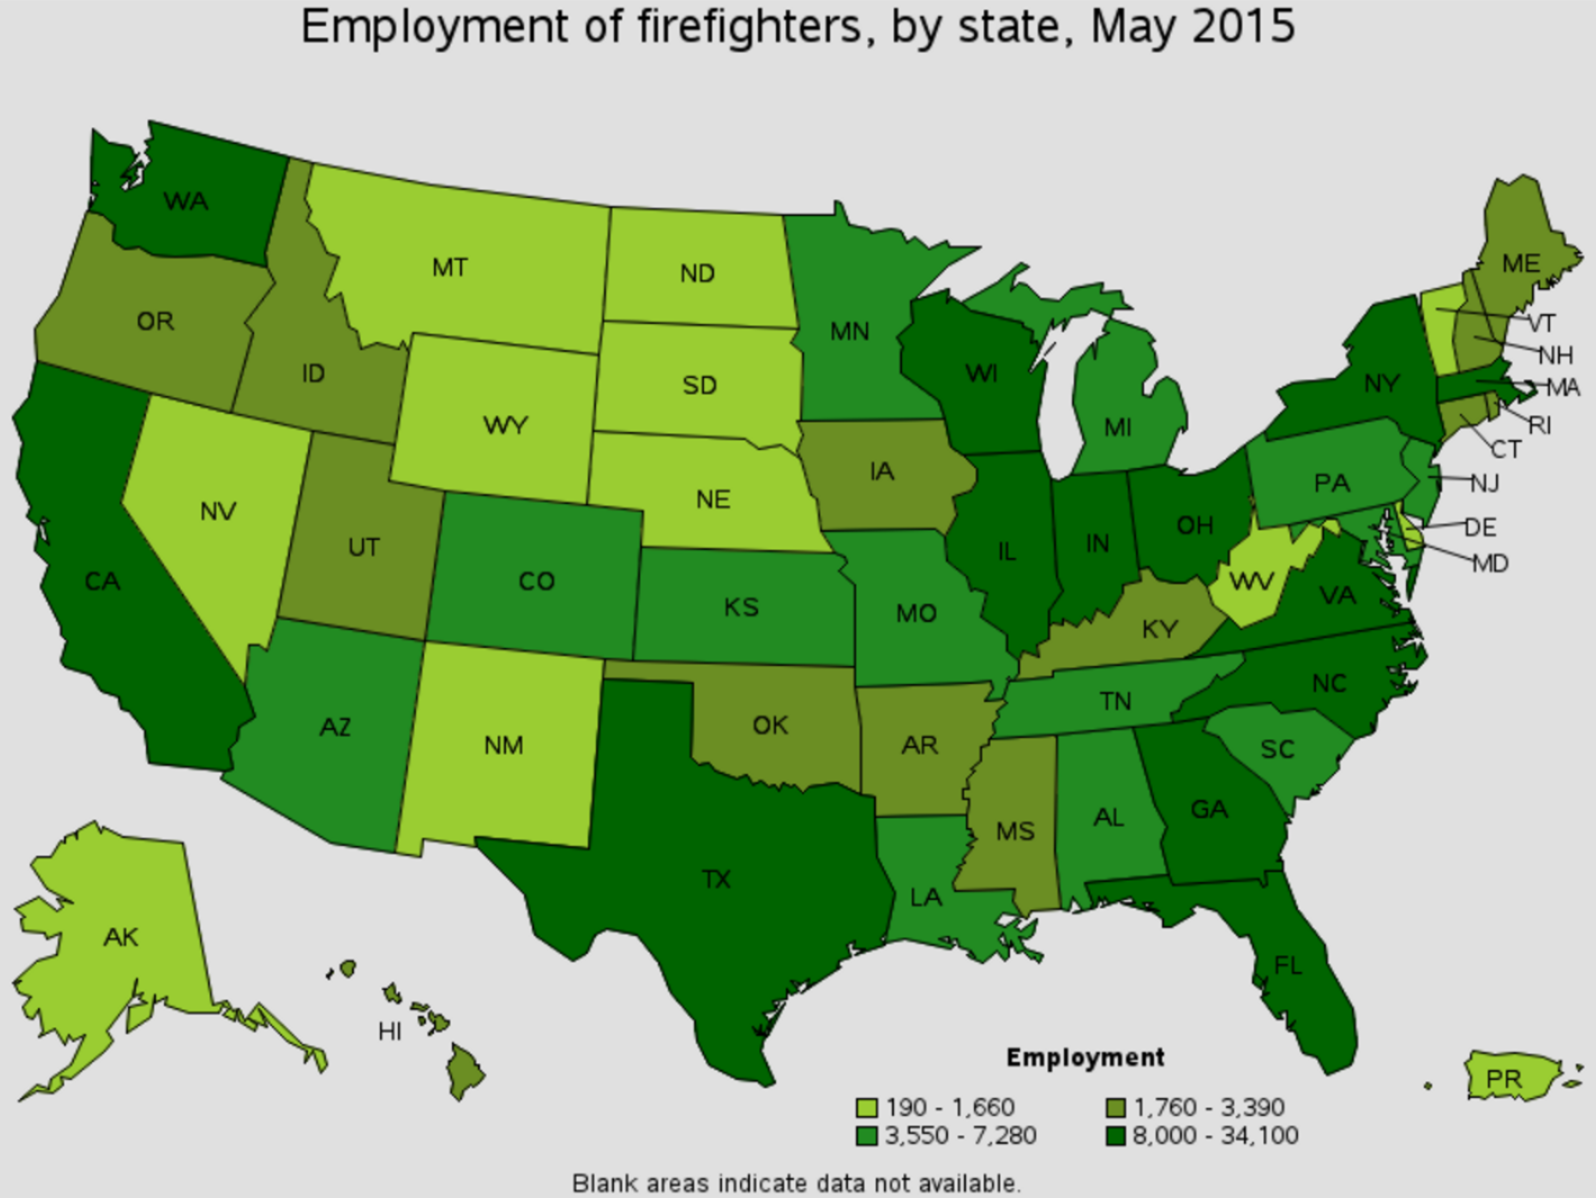 firefighter job outlook by state Thorne Bay Alaska